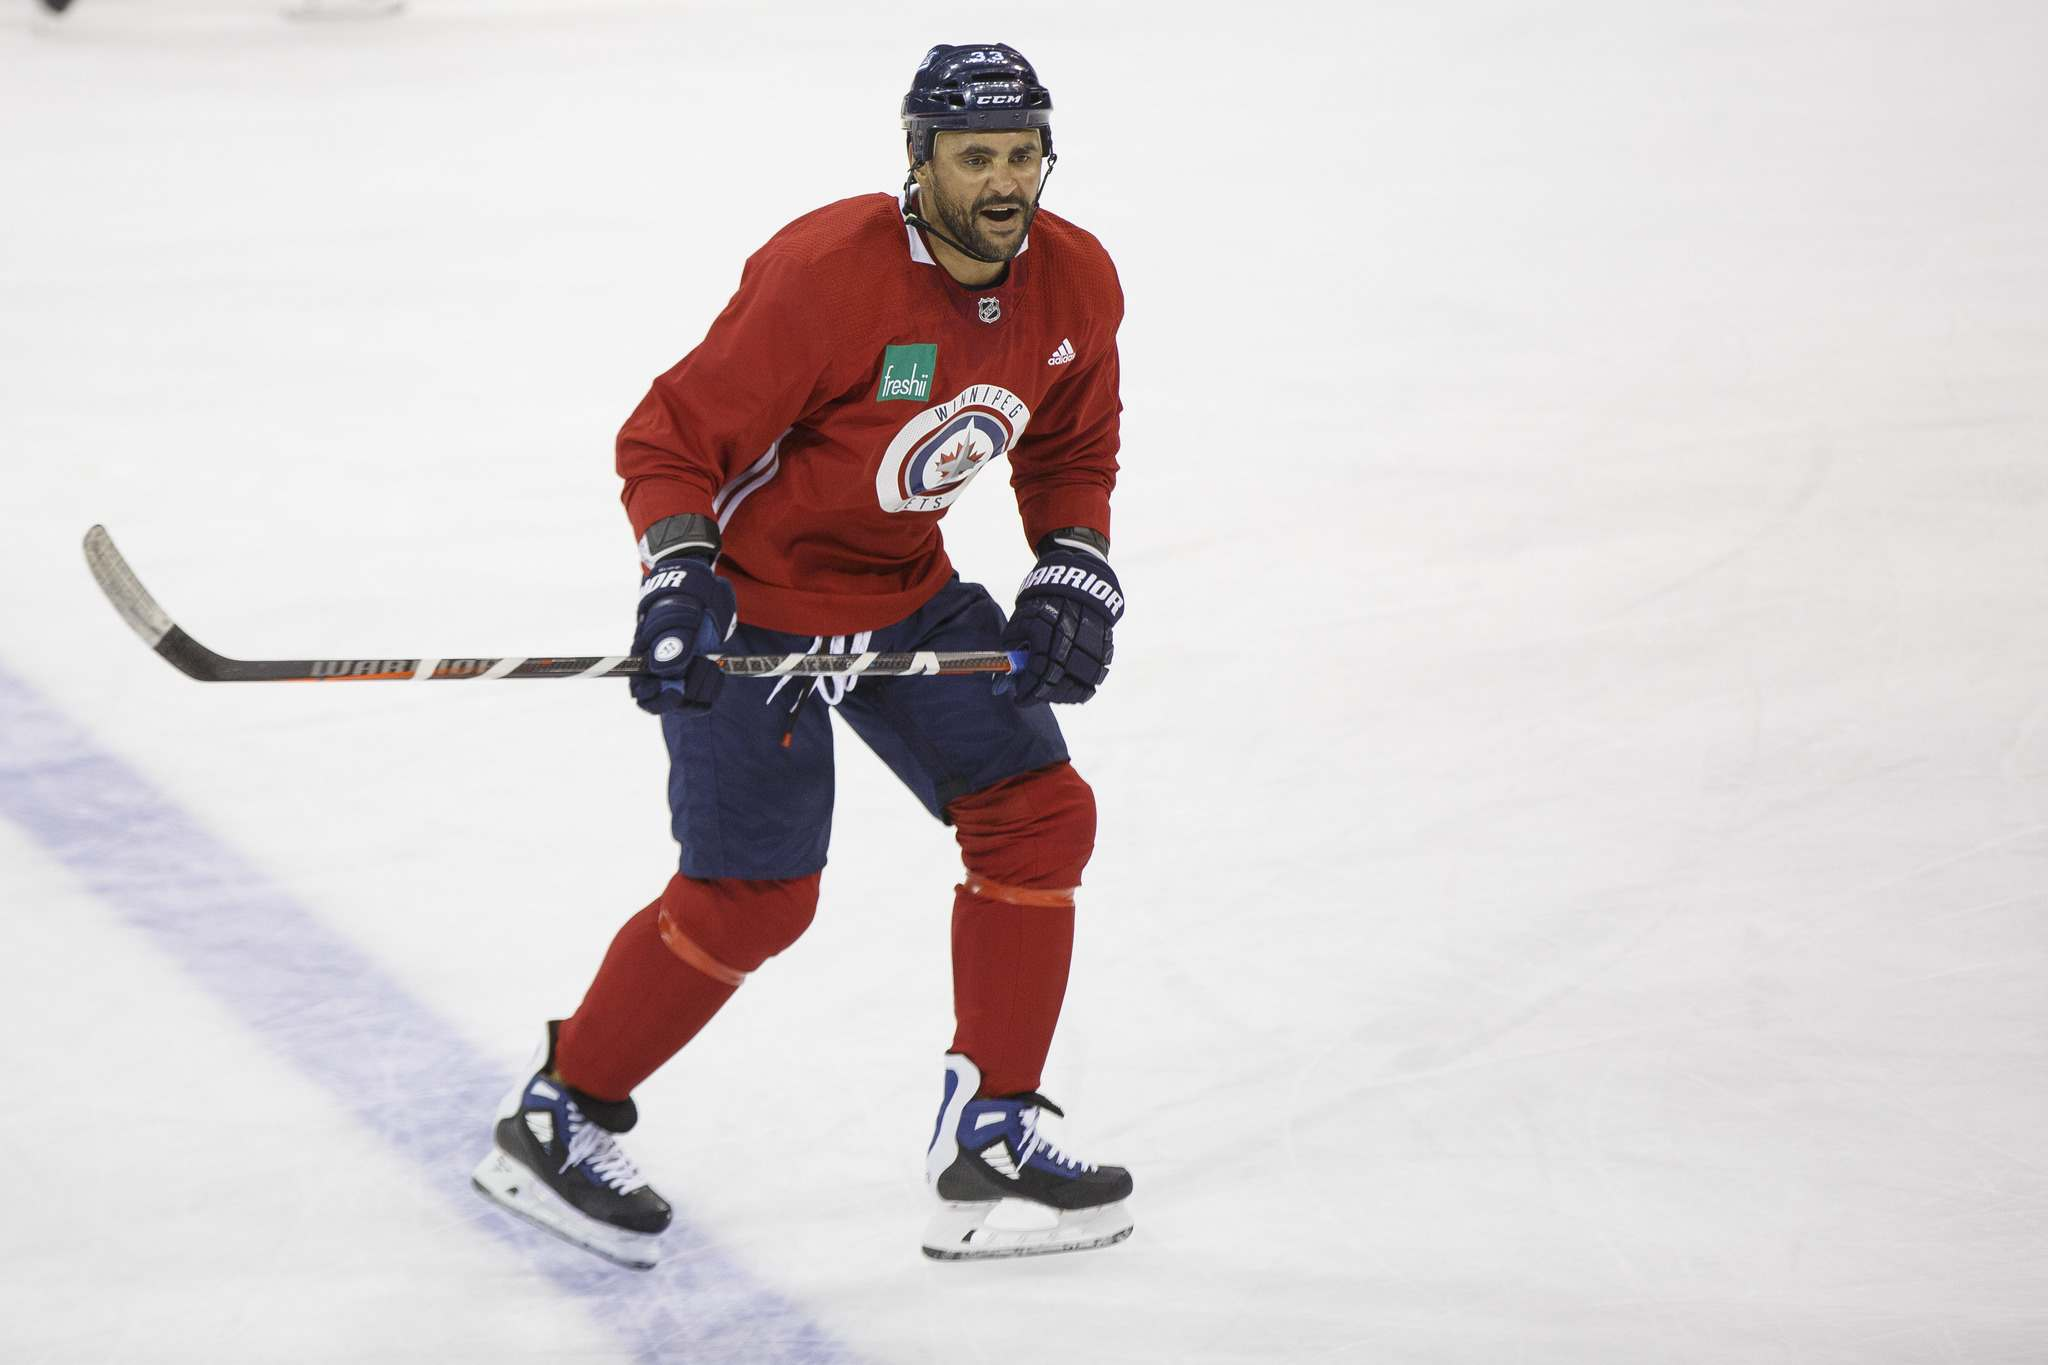 """Dustin Byfuglien will return to the Jets' lineup tonight after being off since mid-February with an ankle injury. (Mike Deal / Winnipeg Free Press files)</p> <p>""""></a><figcaption readability="""